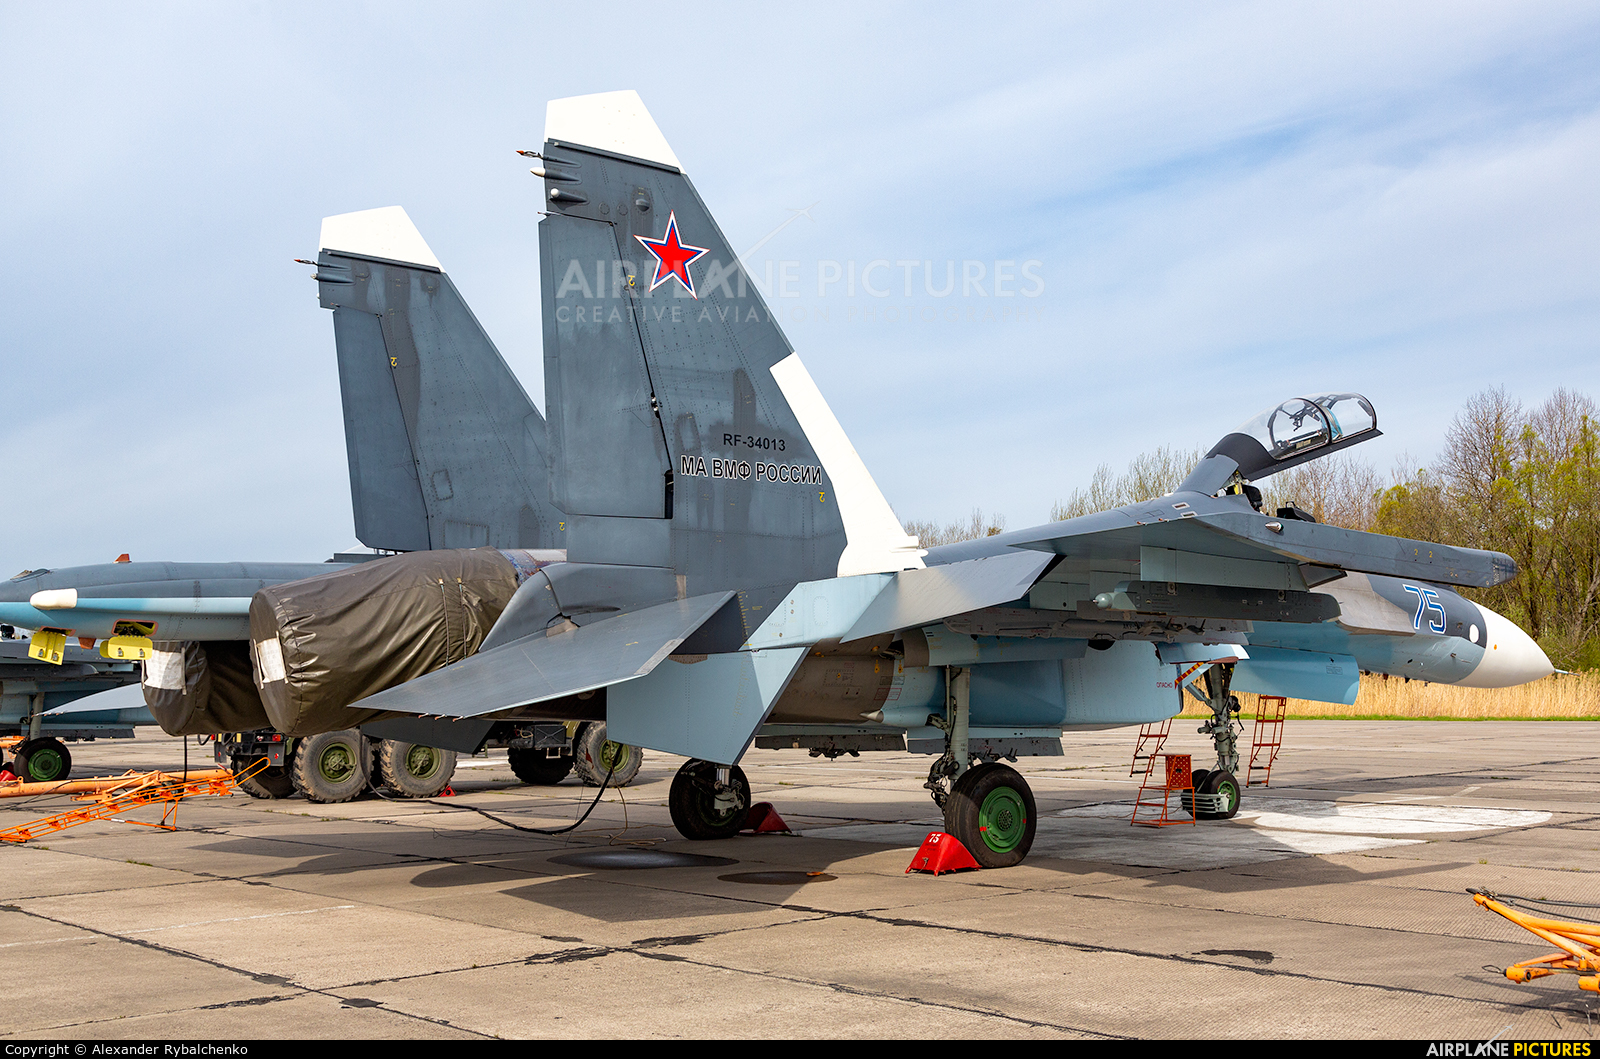 Russia - Navy RF-34013 aircraft at Undisclosed Location